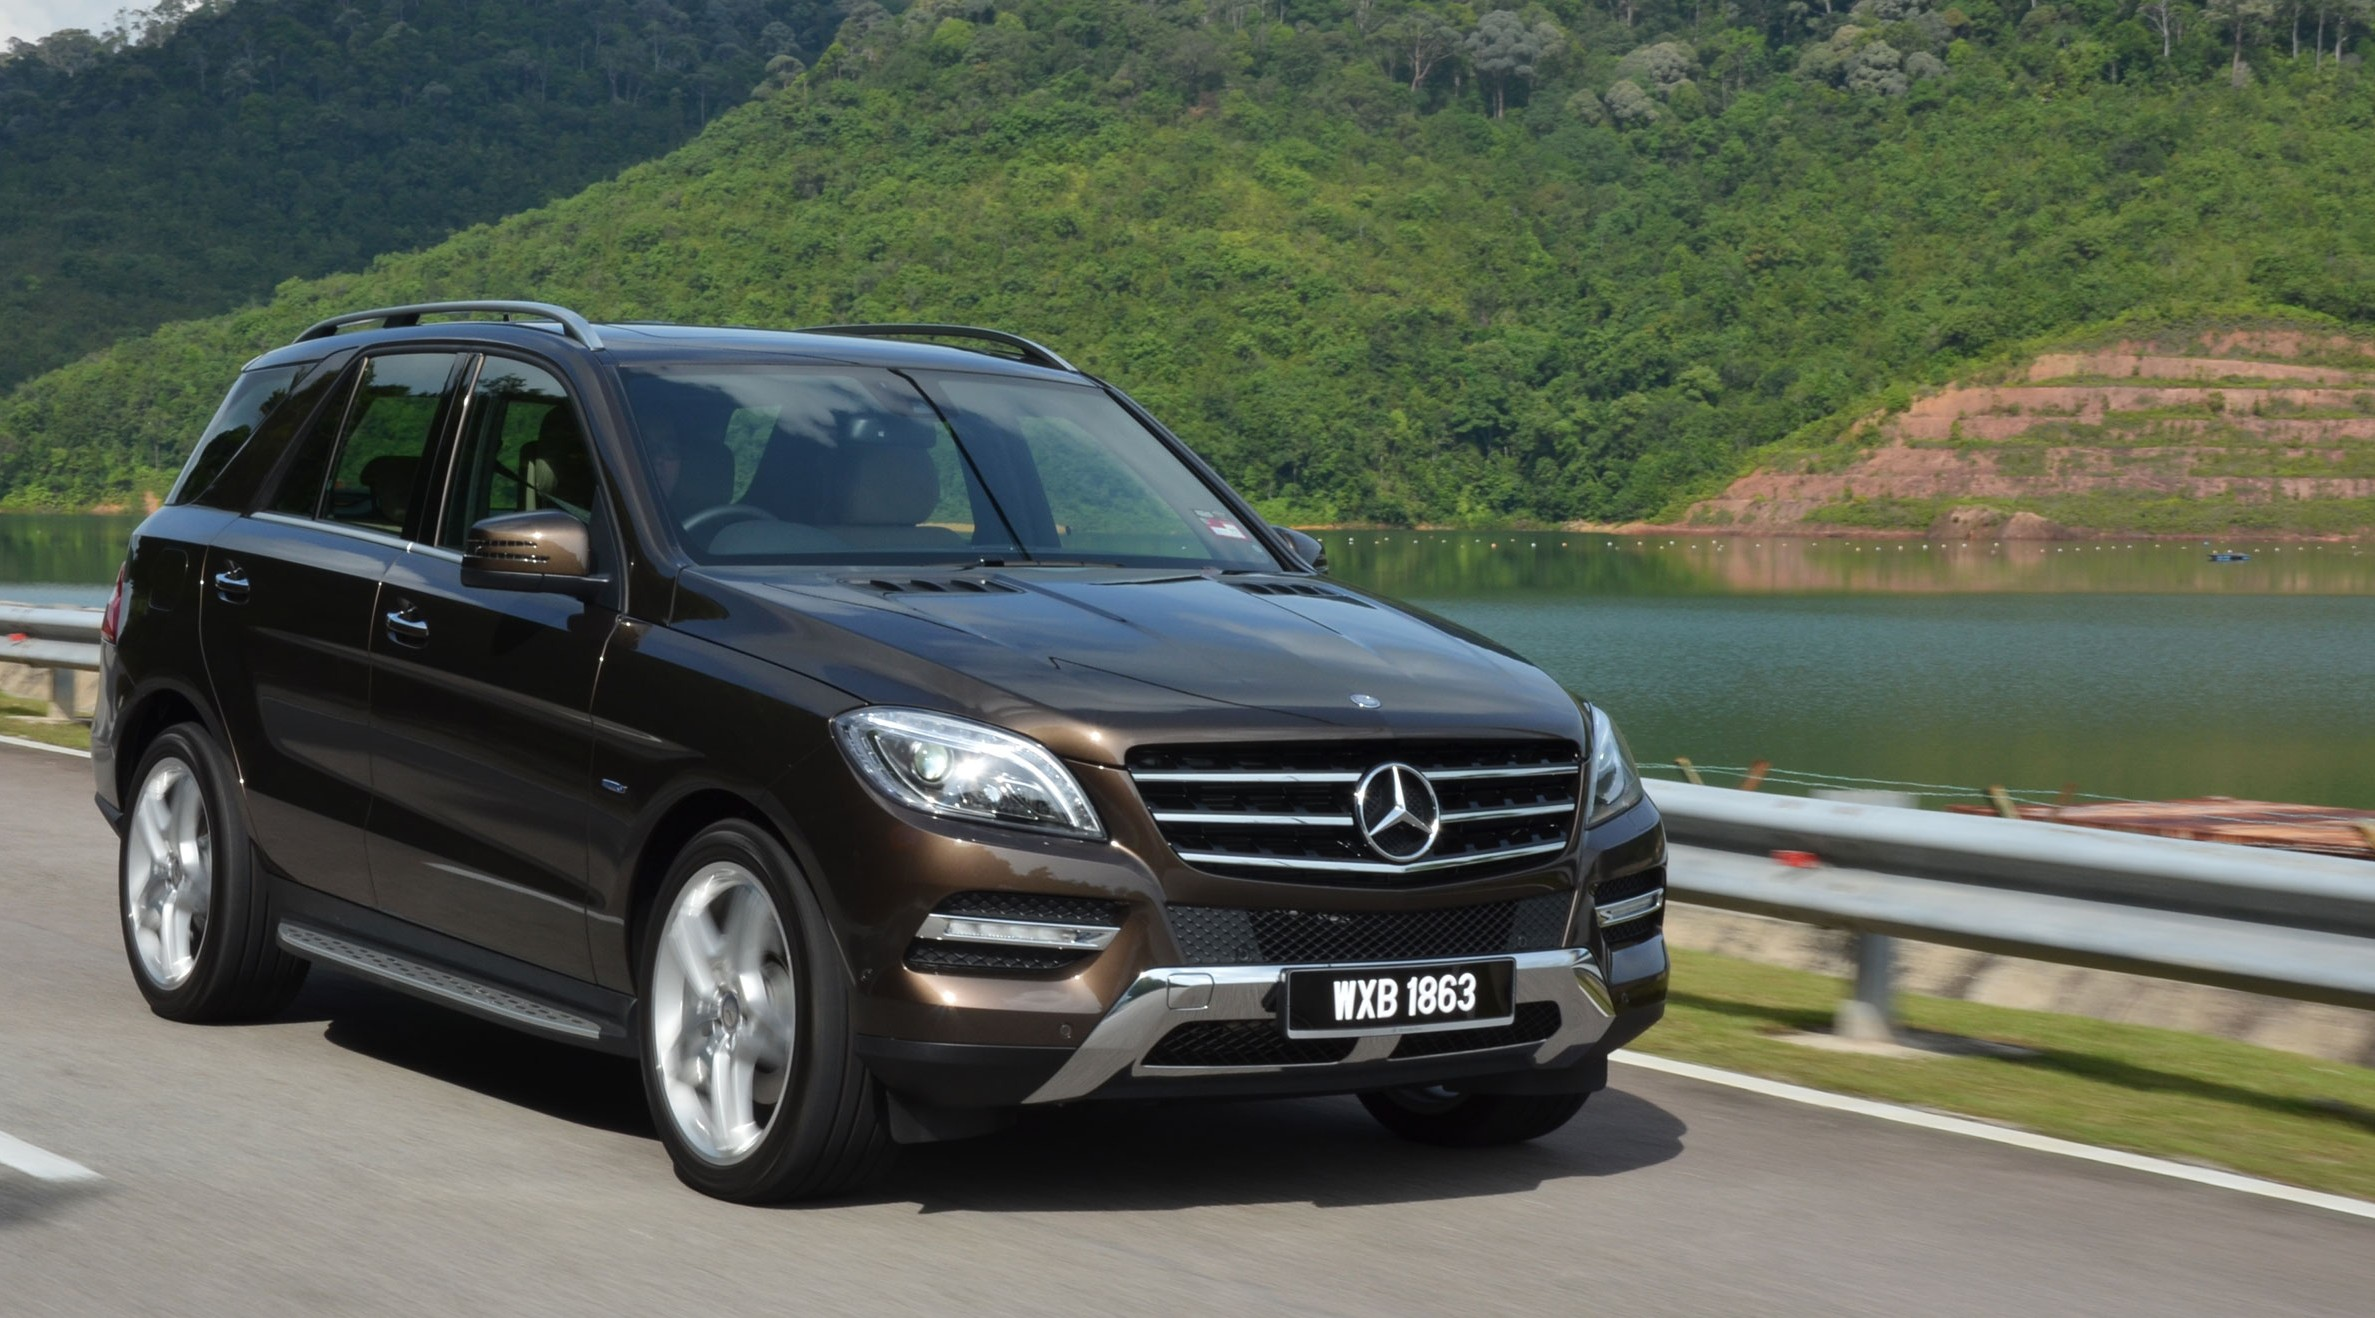 Driven mercedes benz m class ml 350 4matic blueefficiency for Mercedes benz 350 ml